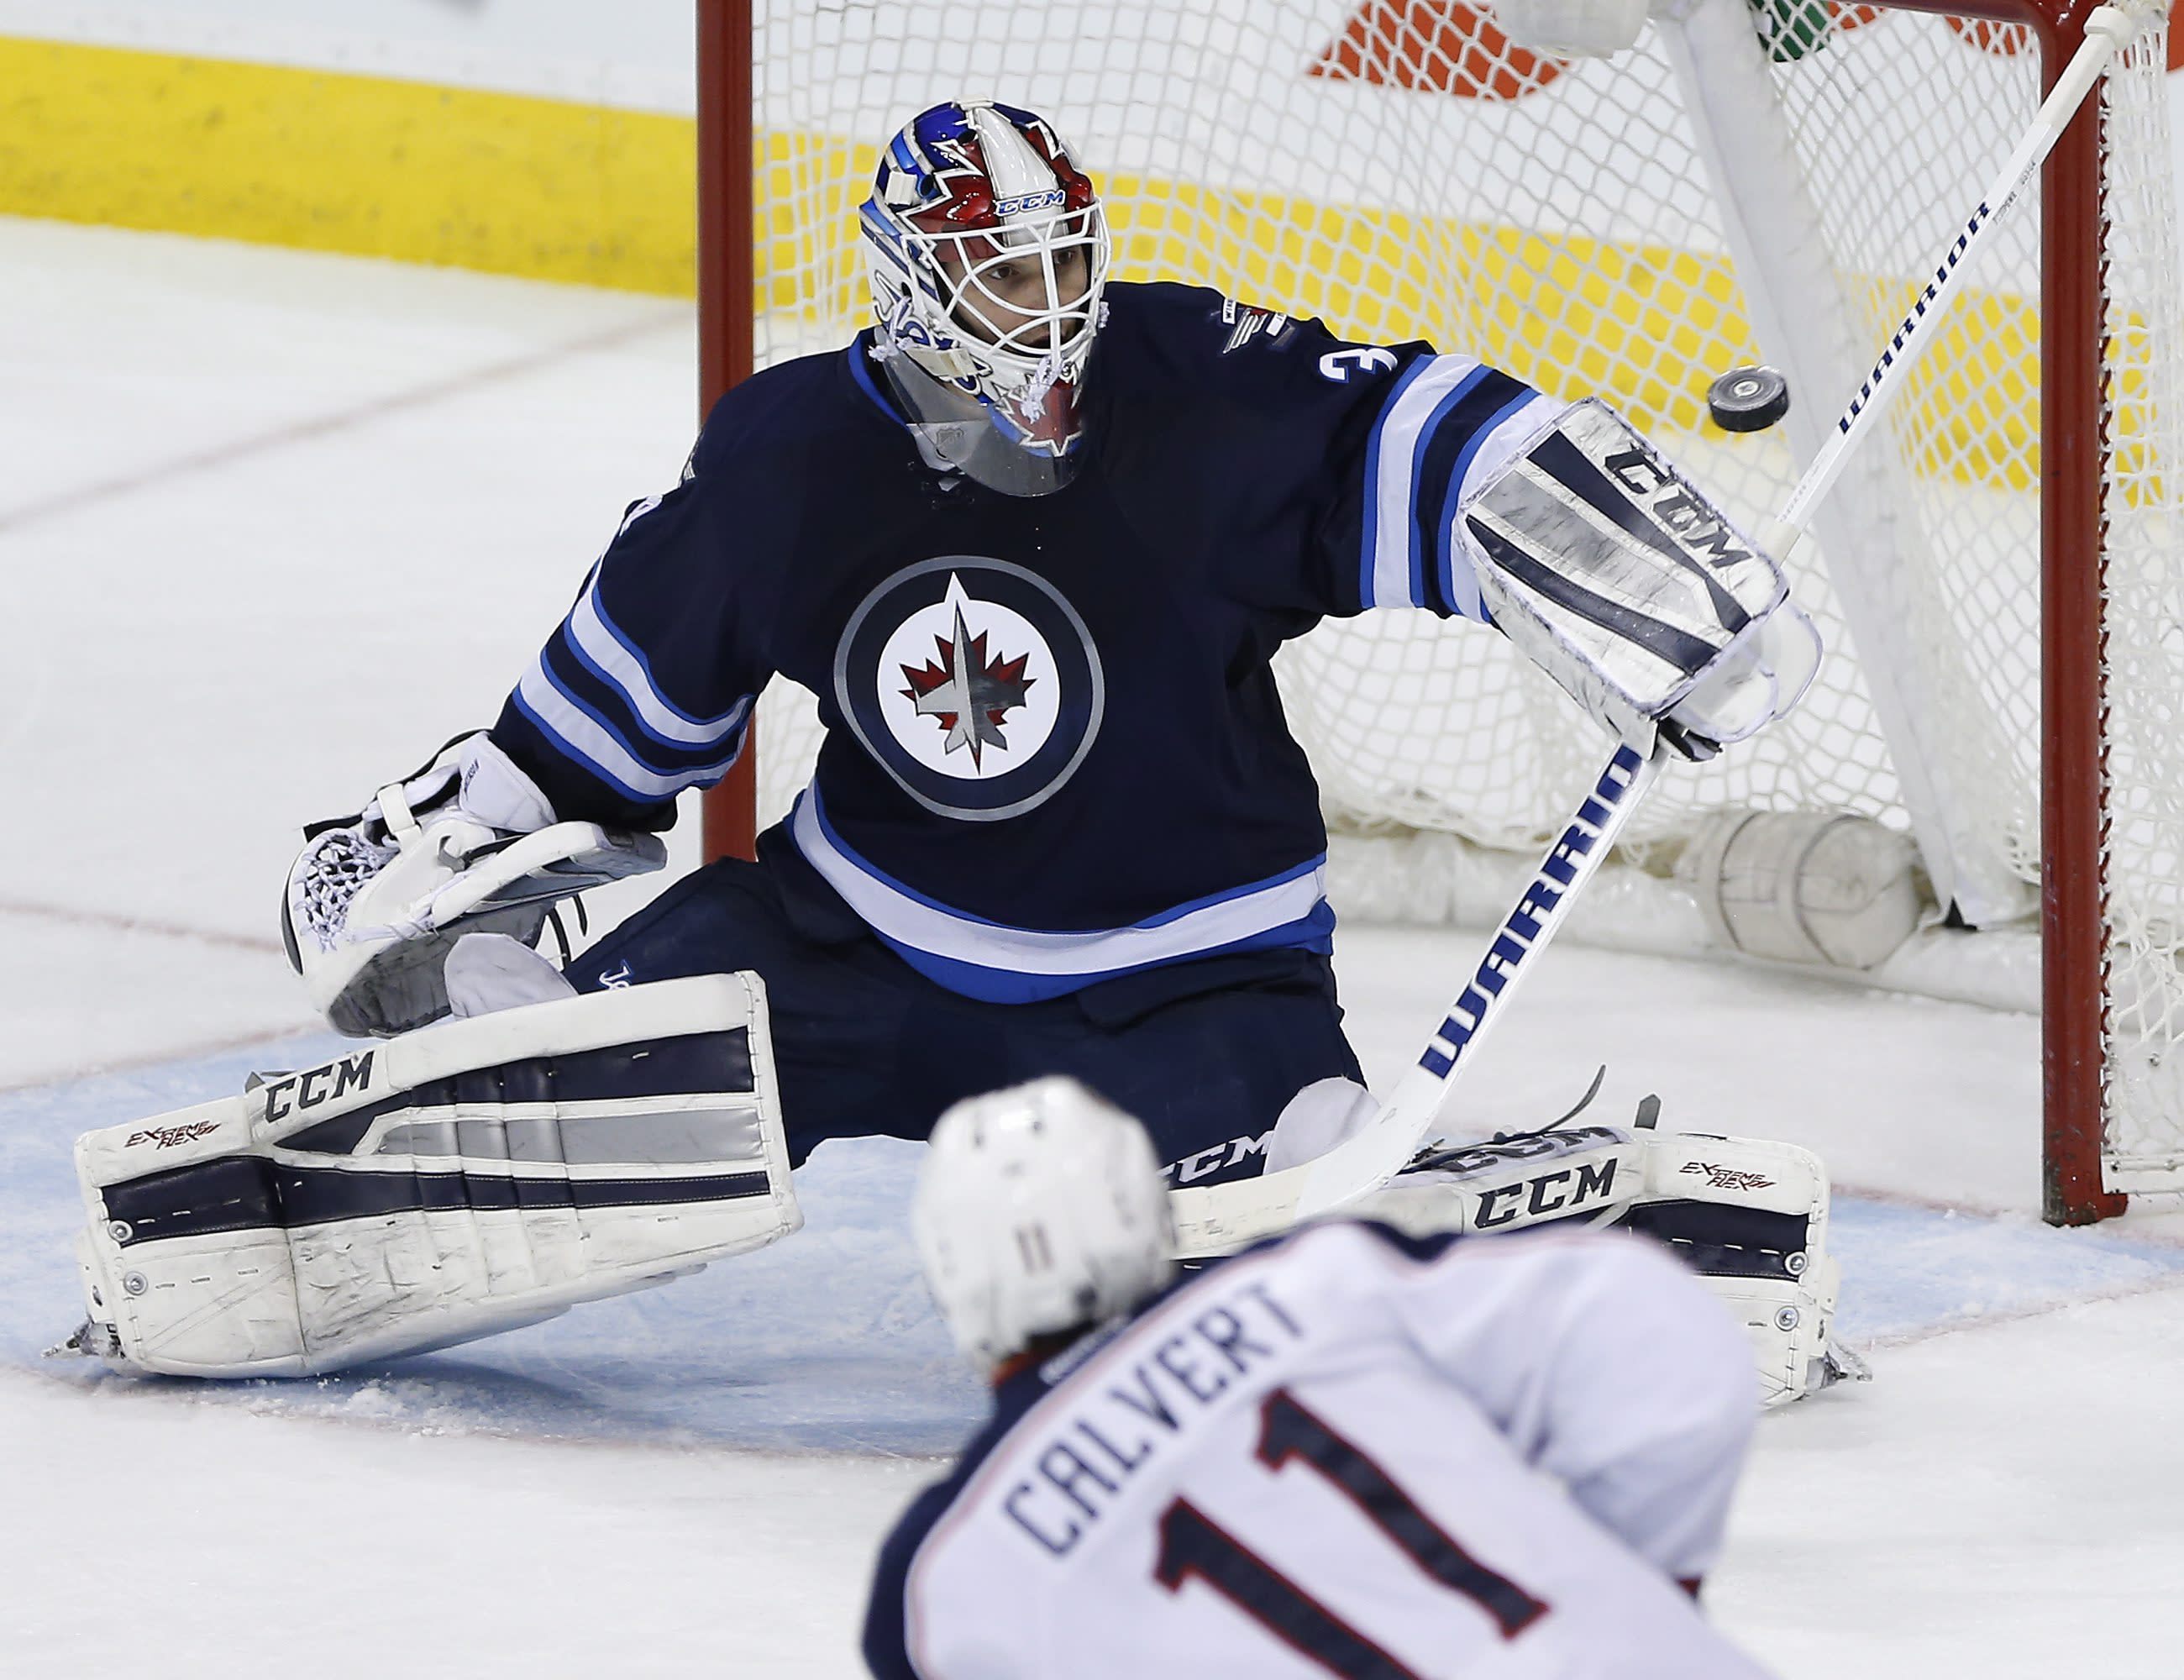 Surprising Jets aiming to land in playoffs